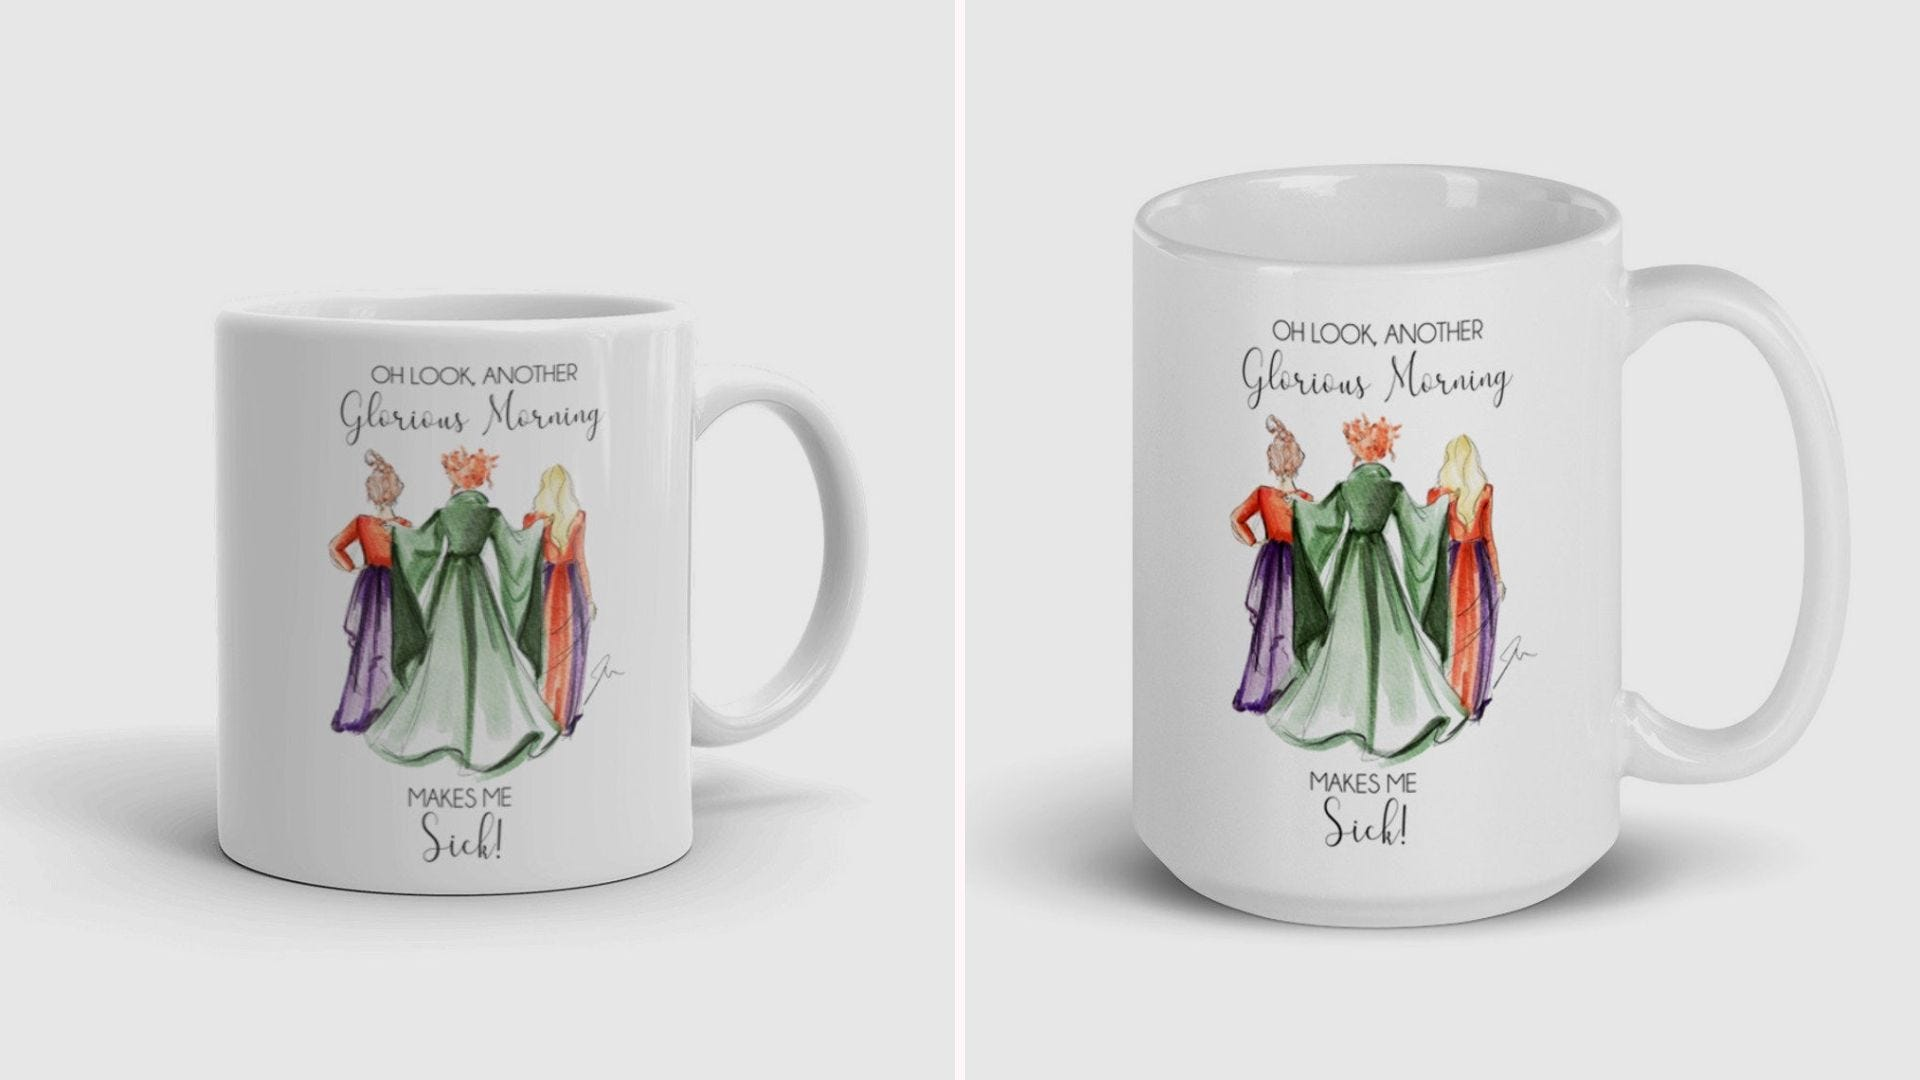 """Two sizes of a white coffee mug with a Hocus Pocus image and """"Oh Look Another Glorious Morning"""" quote"""